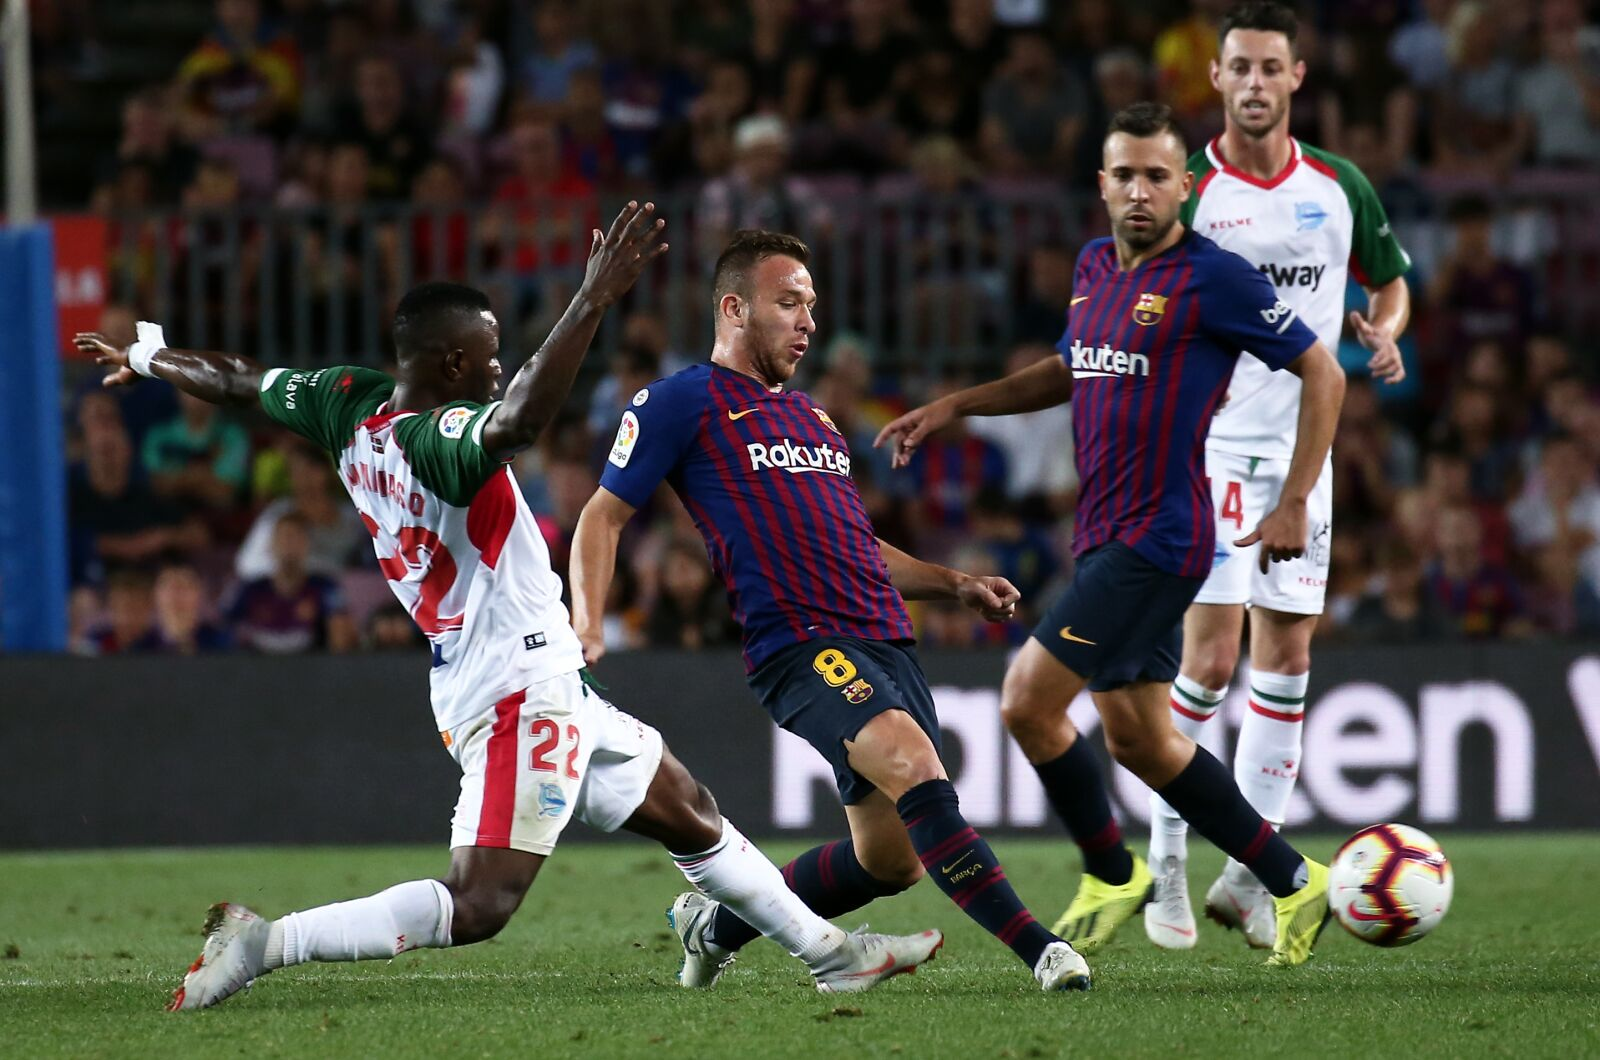 Barcelona squad released for Alaves midweek match